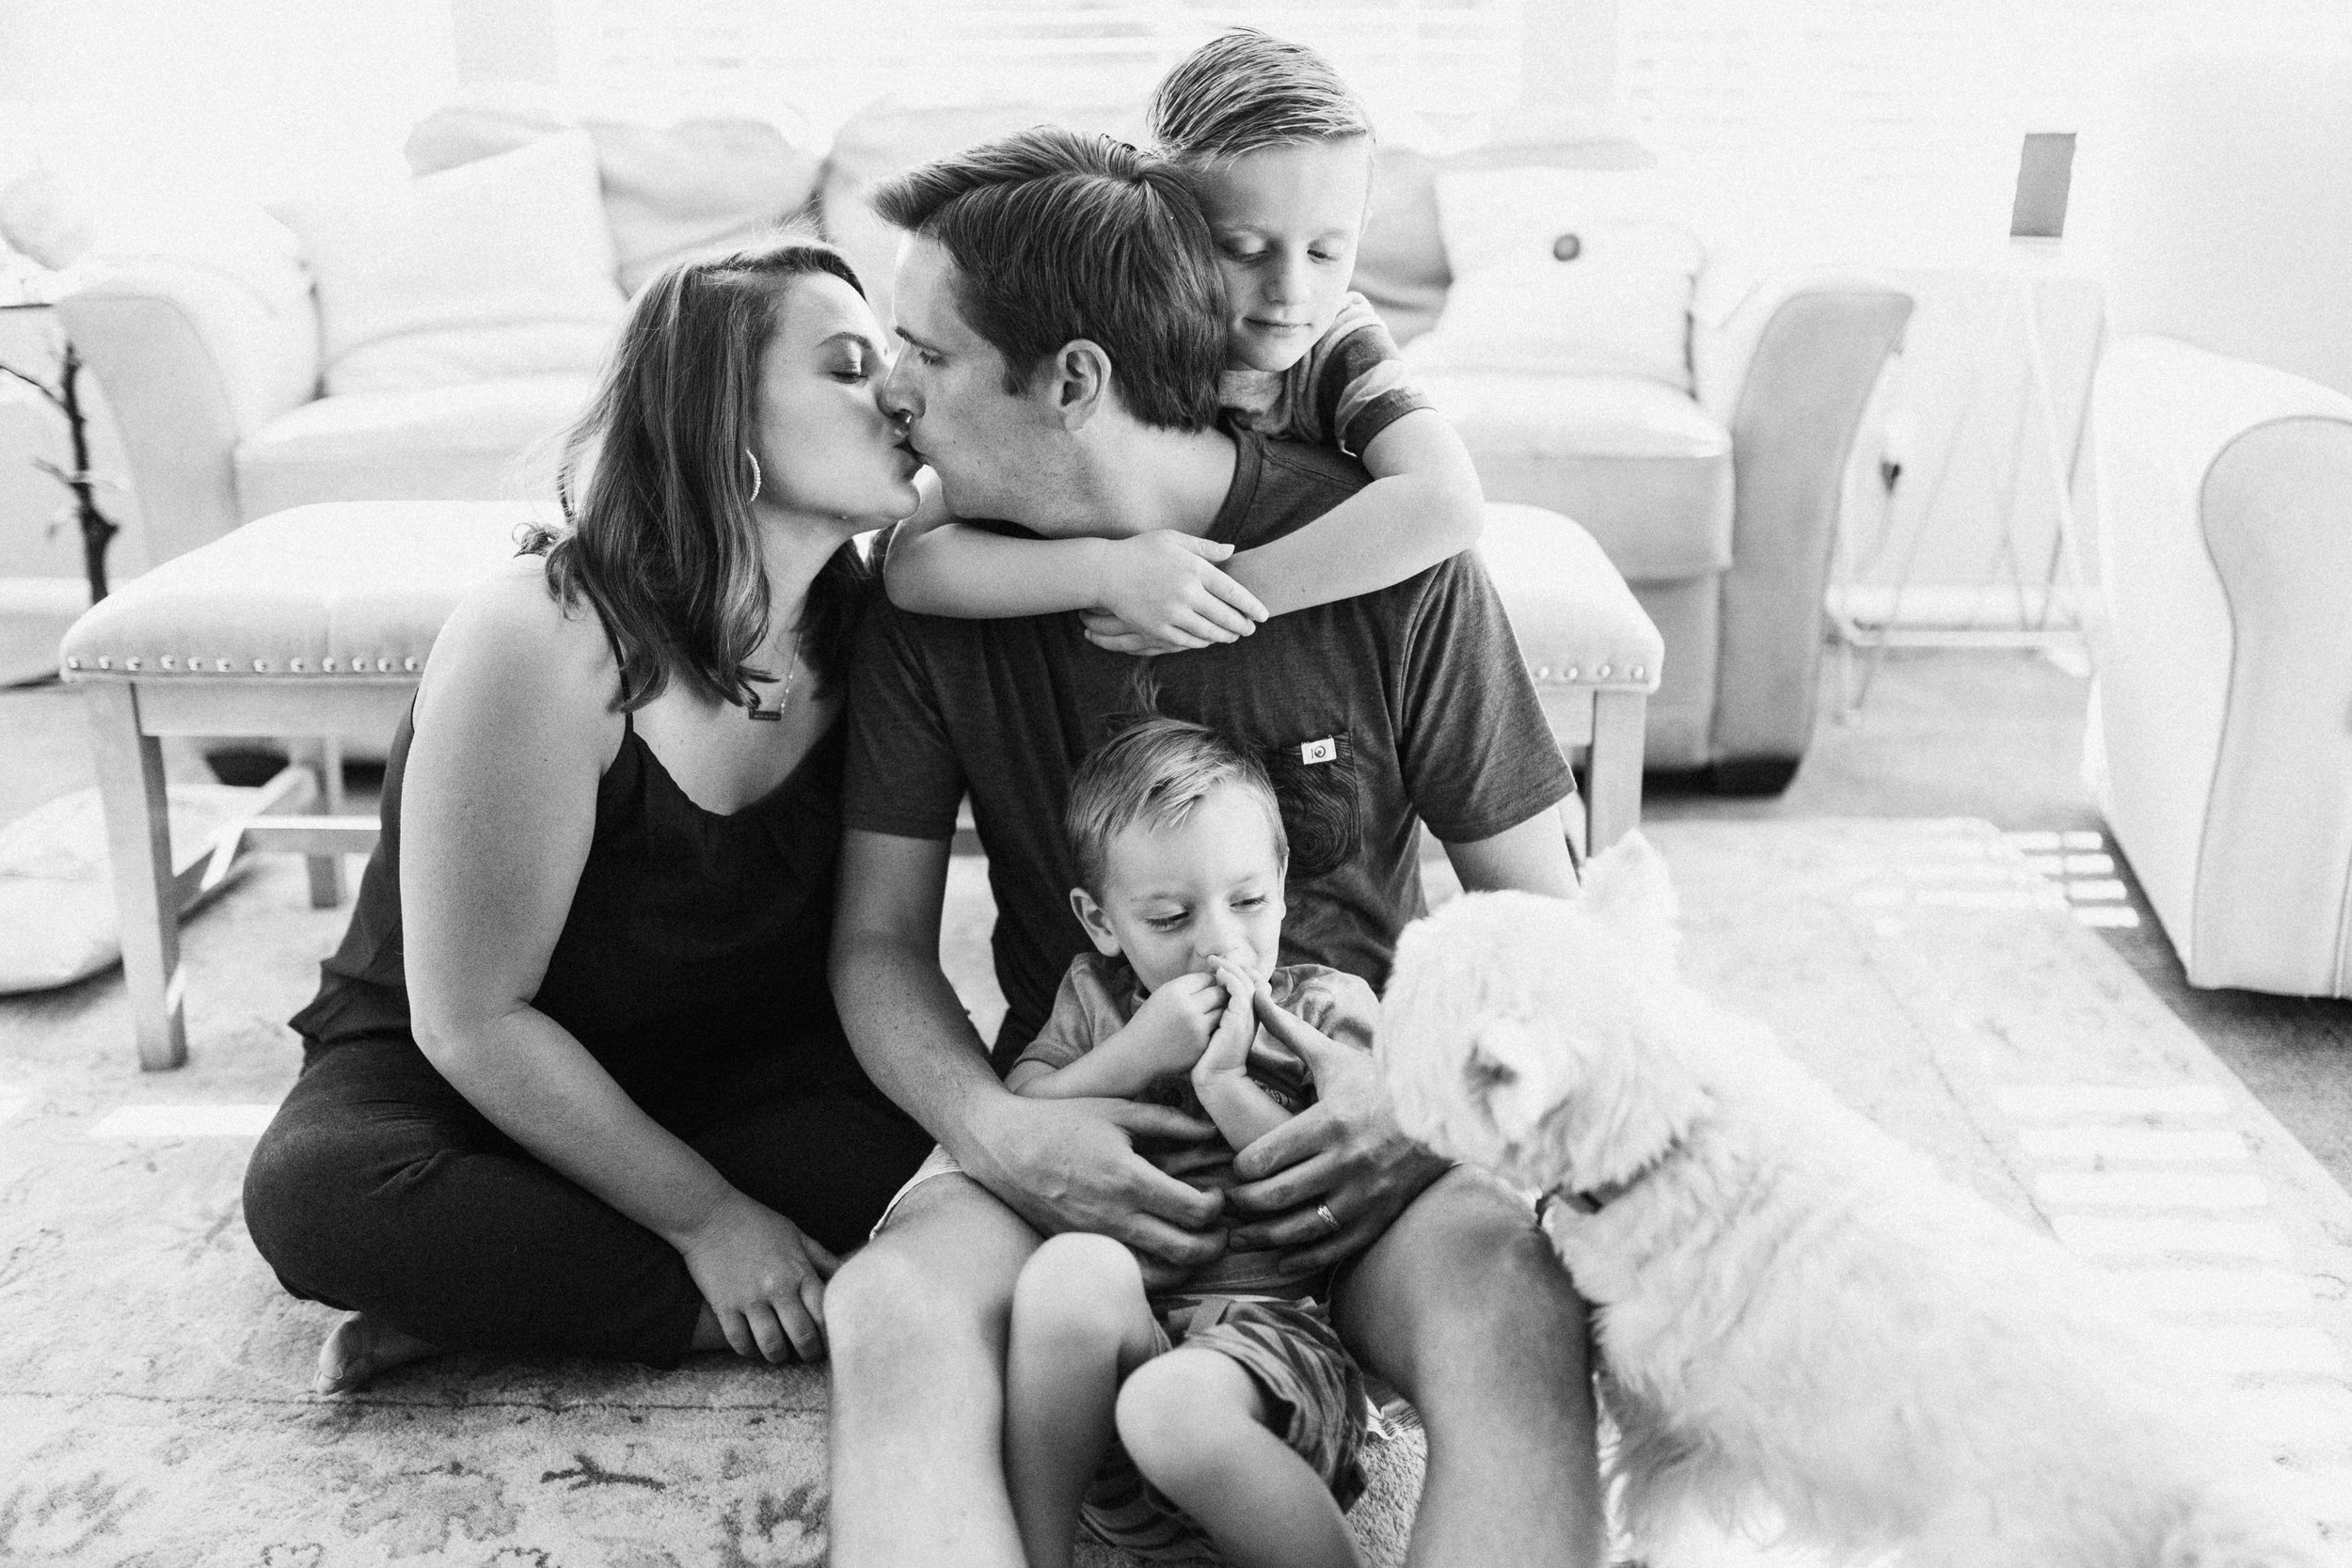 clean-and-bright-intimate-family-photo-during-in-home-session-with-jen-farichild-photography-north-salt-lake-utah